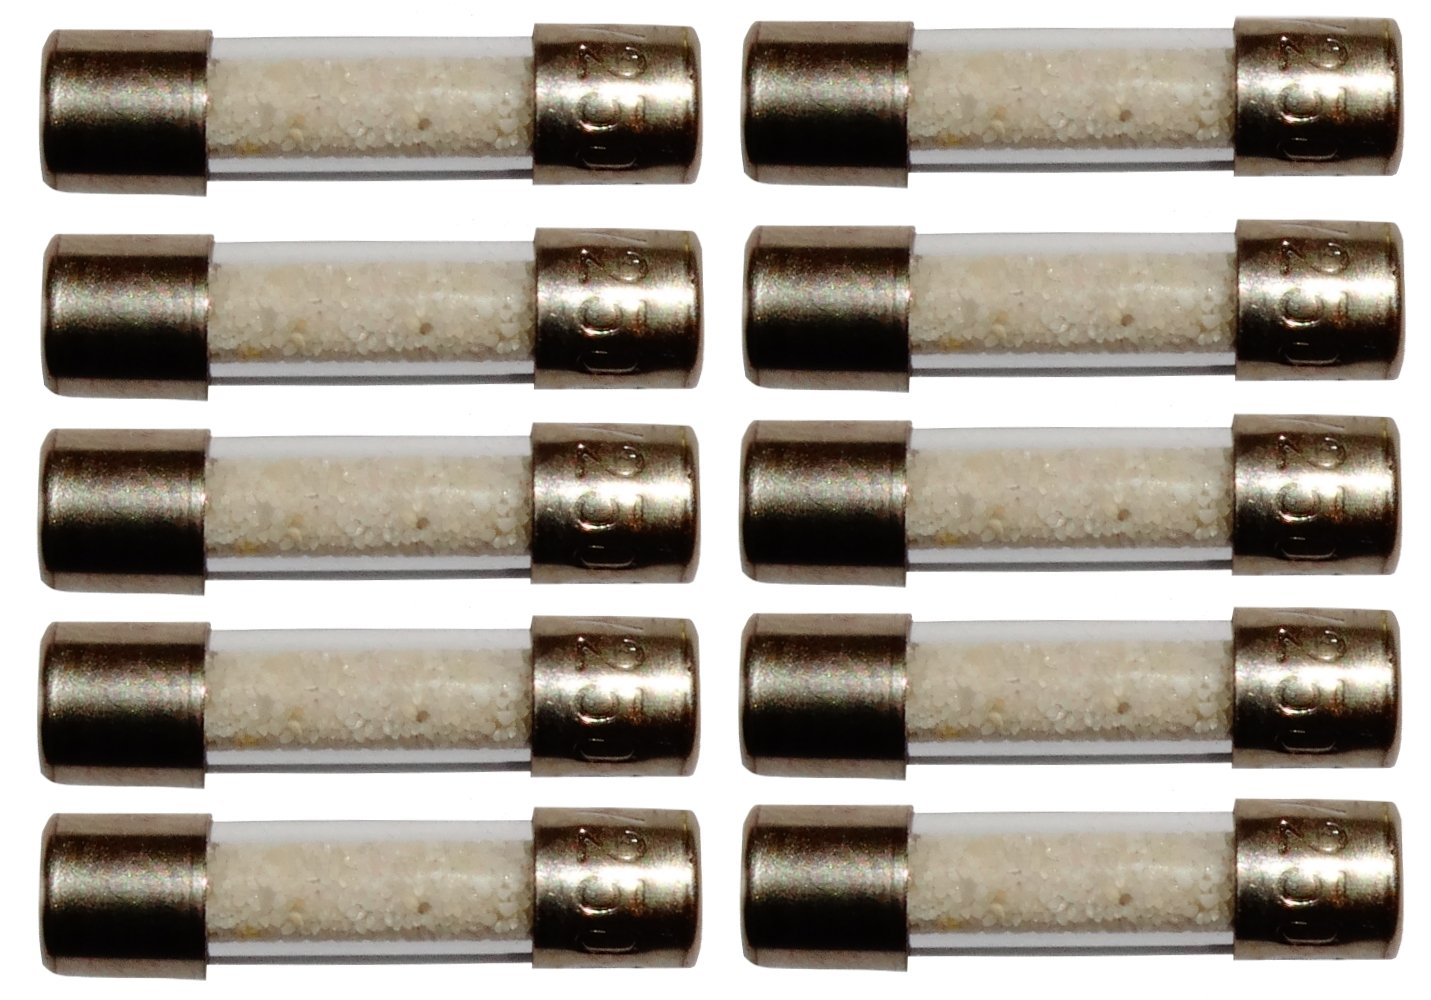 Aerzetix Lot de 10 fusibles semi-lents semi-retard/és semi-temporis/és en verre 2cm 20mm 5mm 5x20mm 220V 250V 3.15A